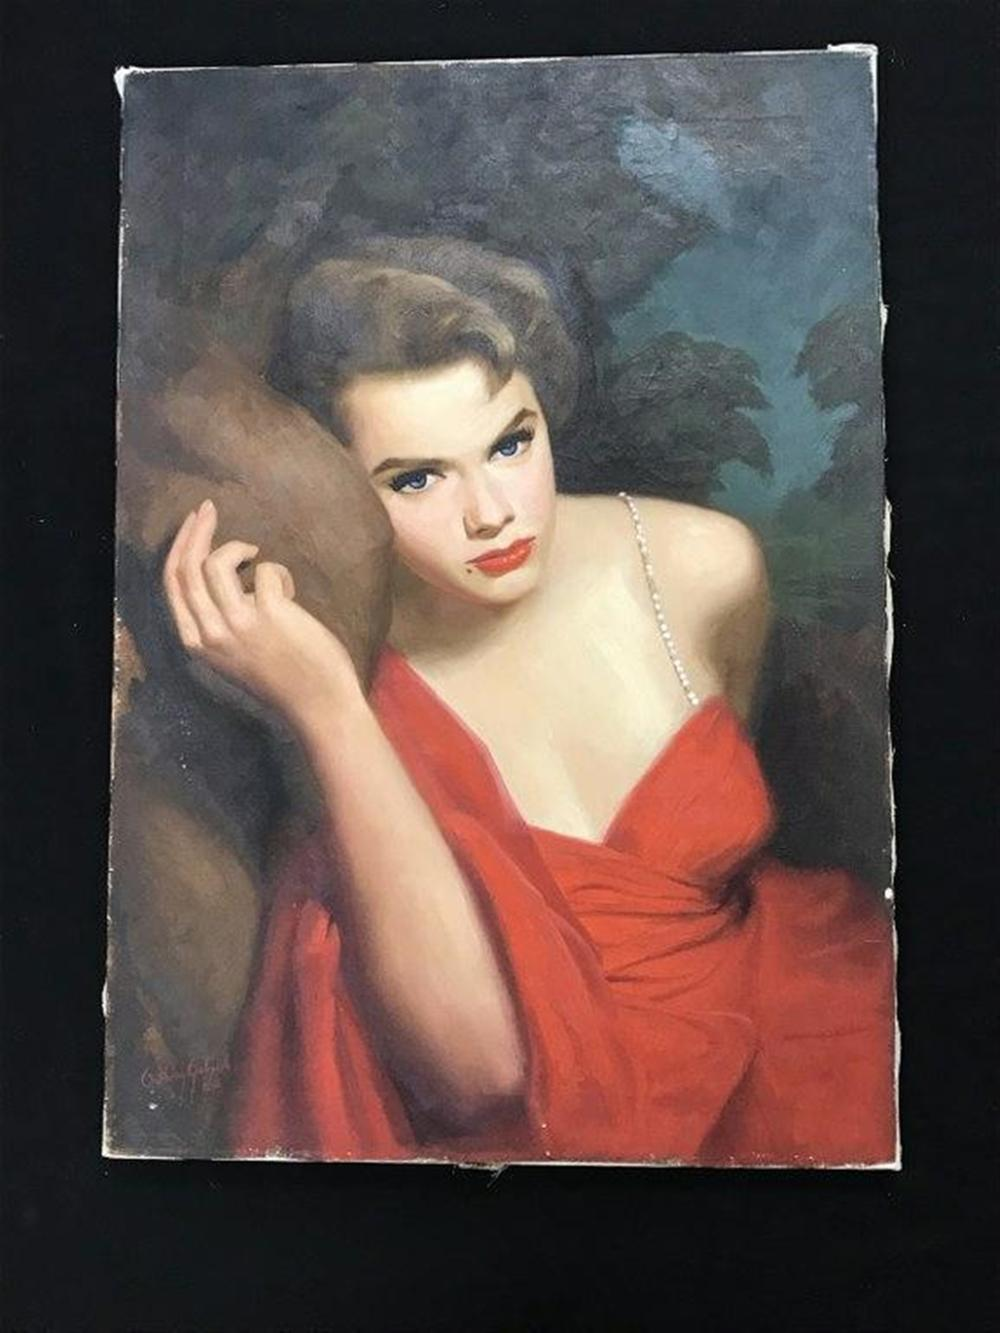 "ORIGINAL O/C ROMANCE NOVEL ILLUSTRATION FOR COVER, SIGNED ANTHONY GABRIELE, 5/60, CANVAS MEASURES 26"" X 18"", FROM PRIVATE COLLECTION WE ARE SELLING?"